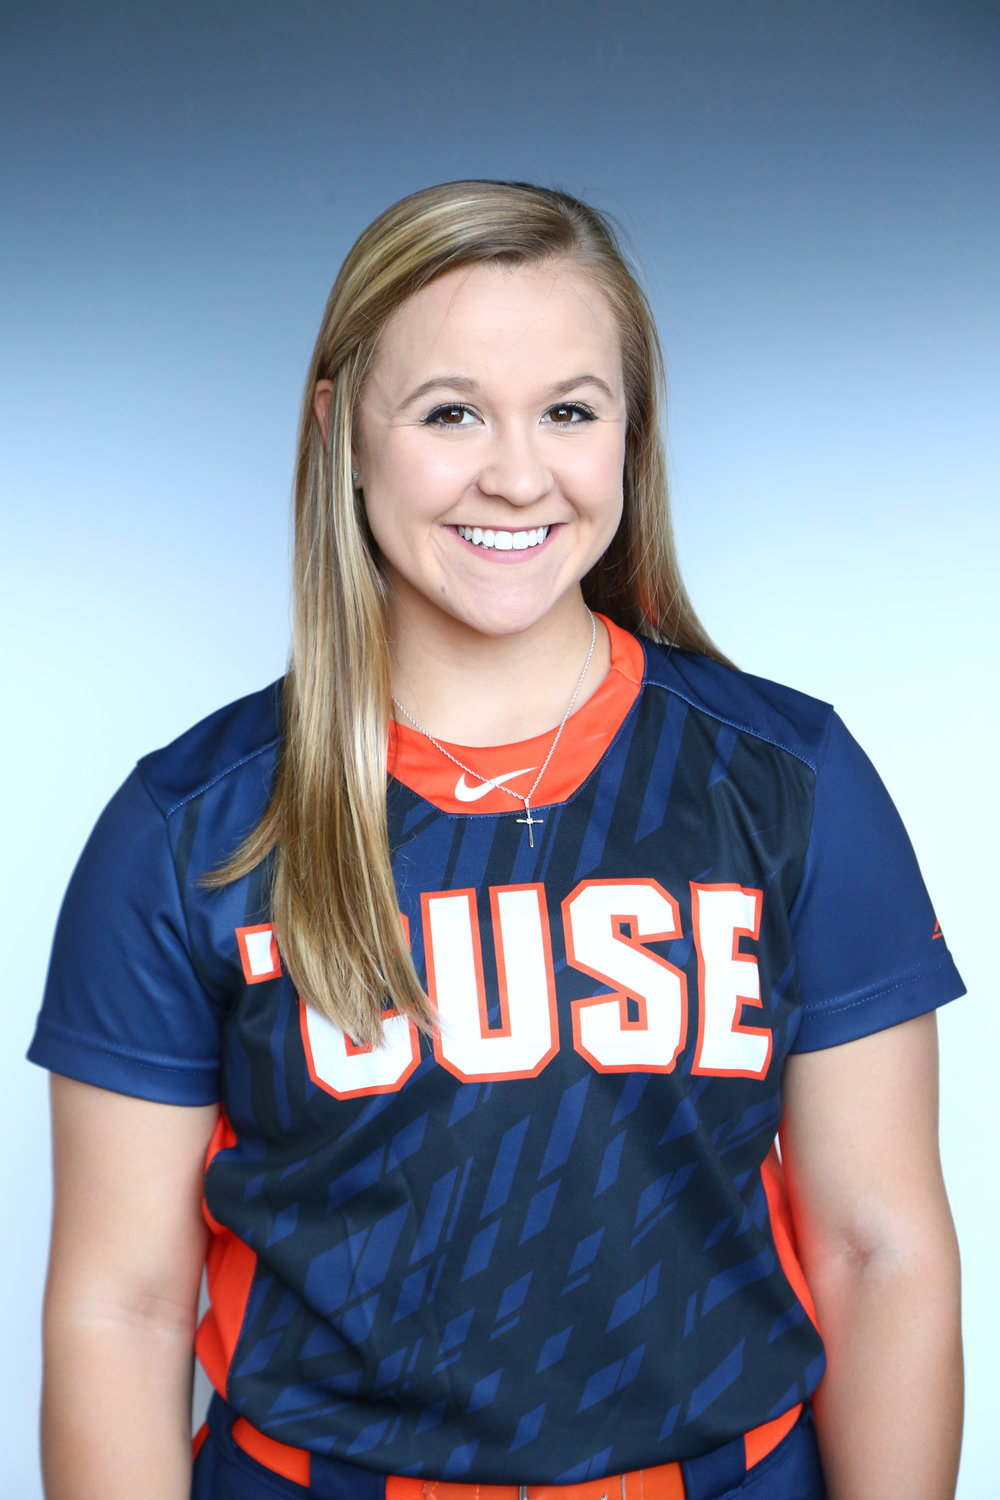 Bryce Holmgren - I am a senior softball player at Syracuse University. I love coffee and dogs, but my true passion lies in my heart for people. I love to help people and hope to use my gifts to help people who can't help themselves as a doctor one day.